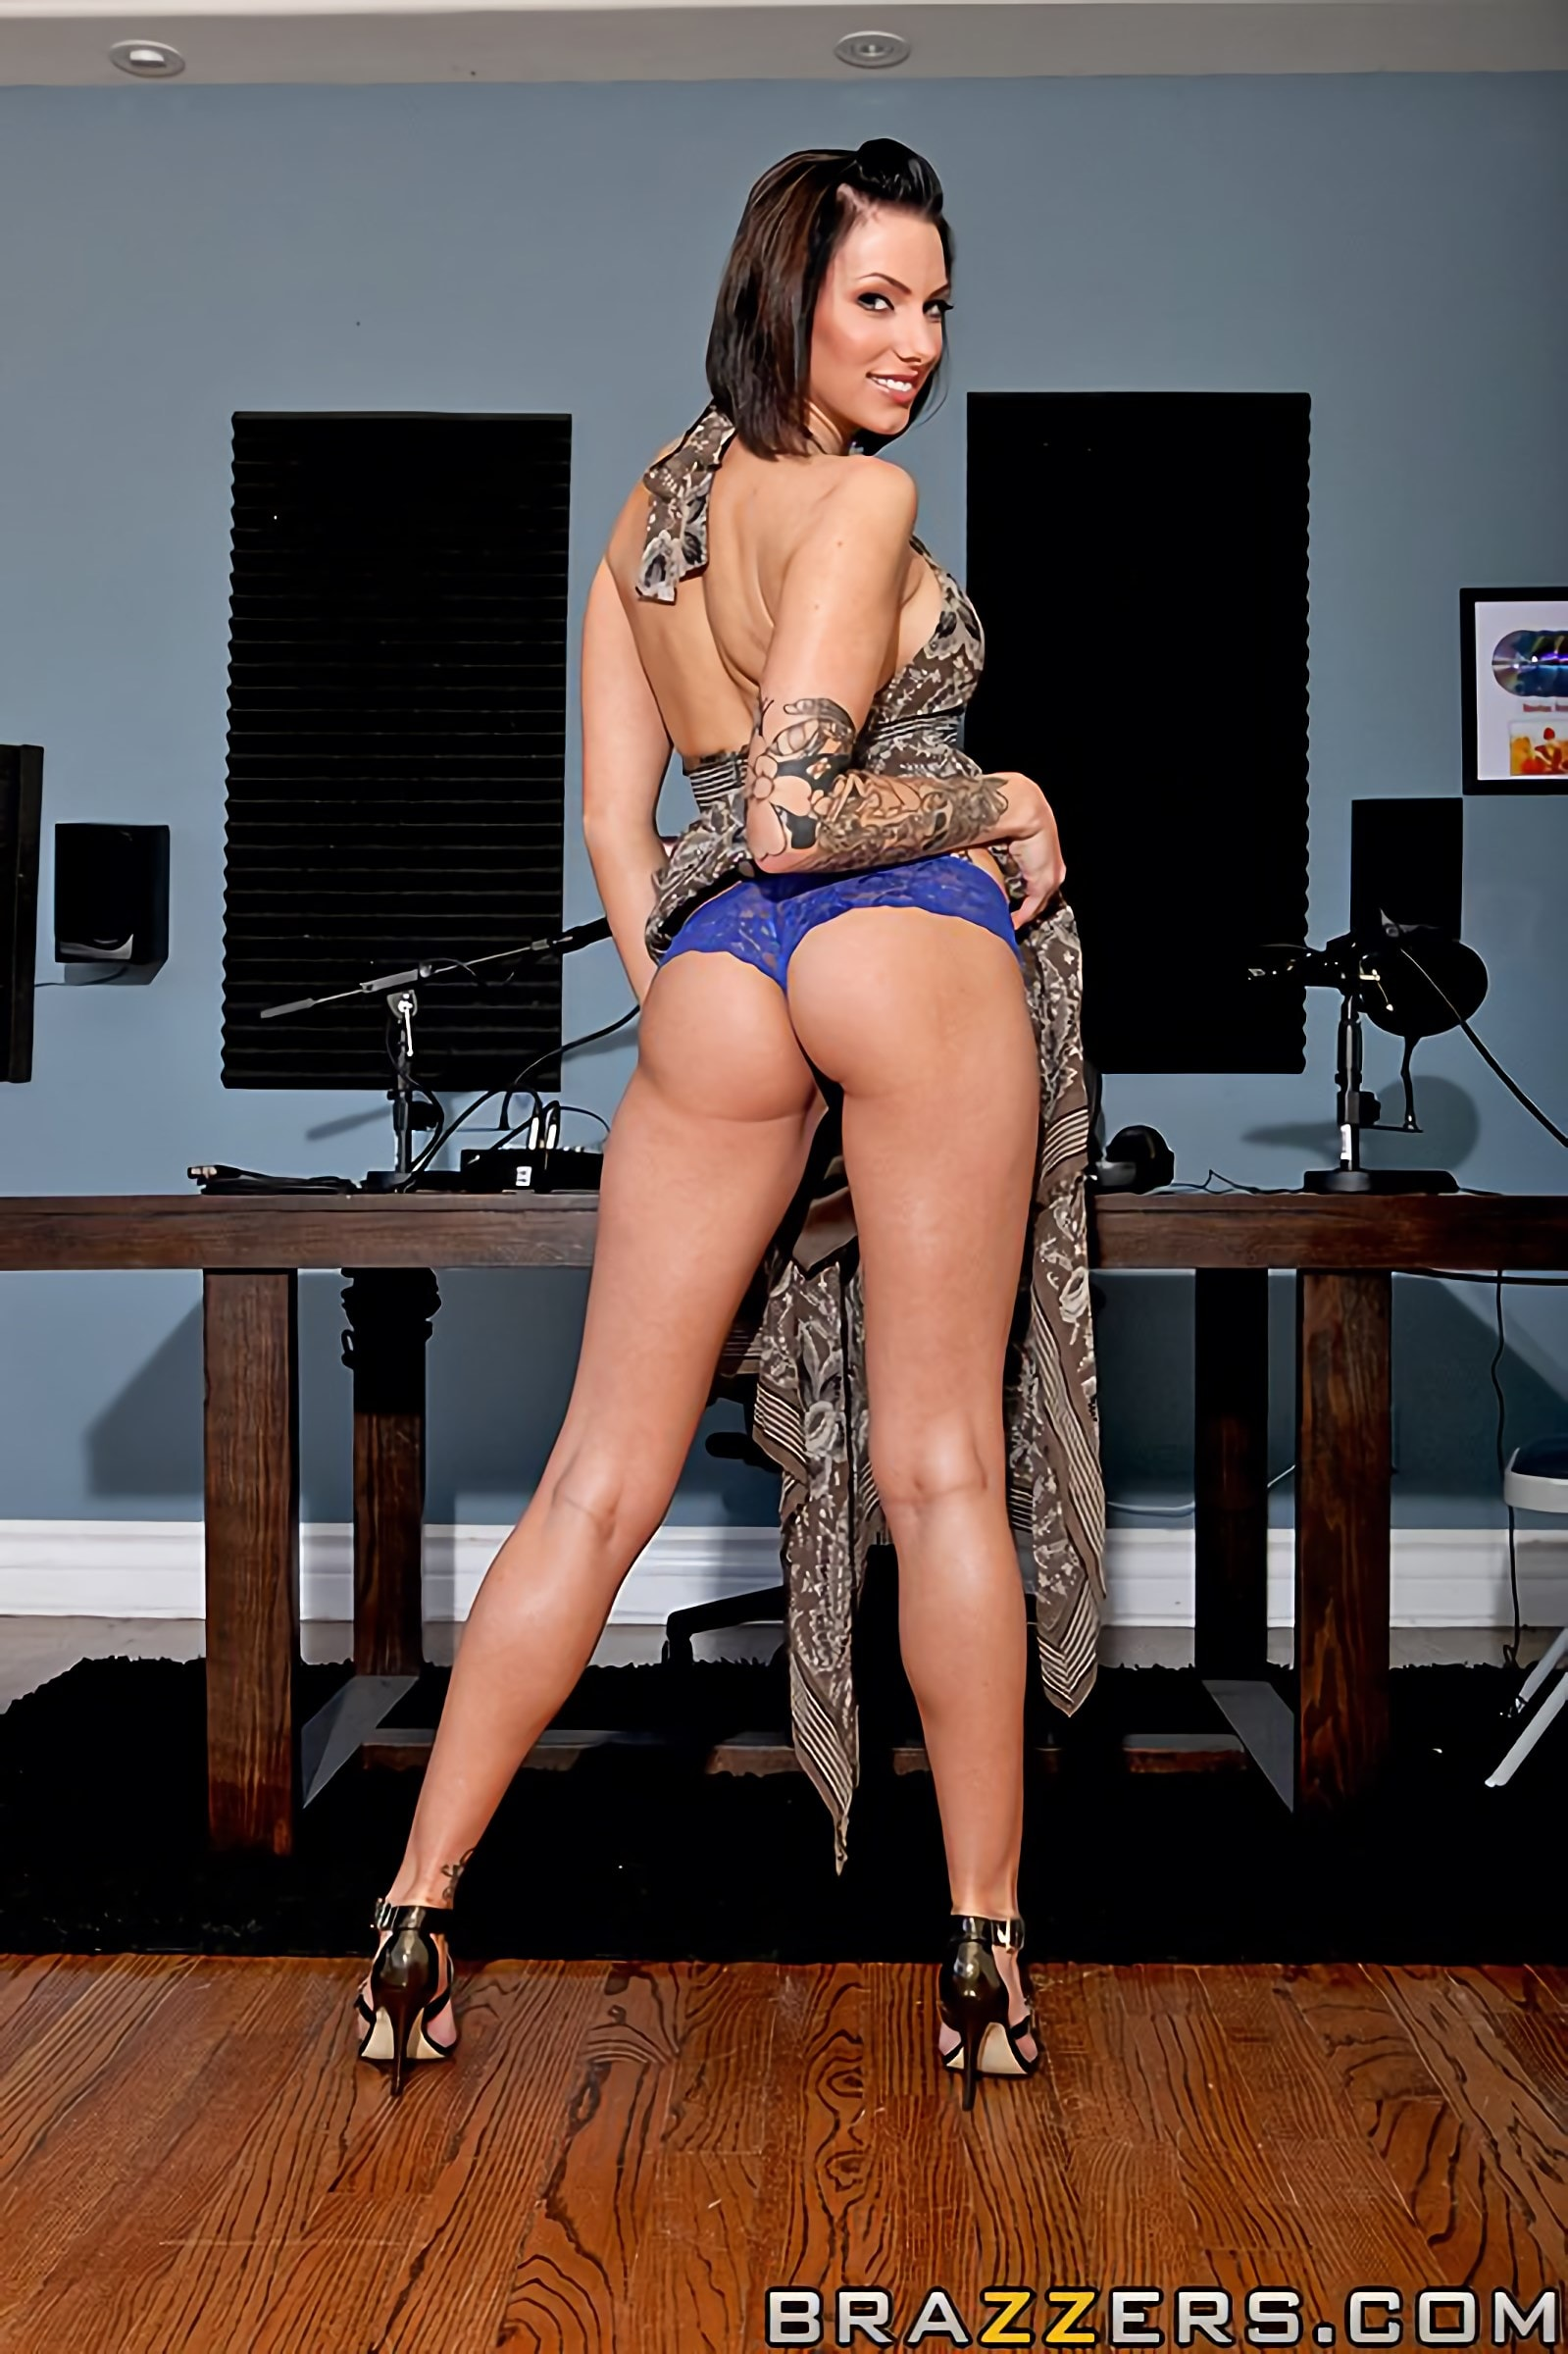 Brazzers 'Battle of the Daisies' starring Juelz Ventura (Photo 2)